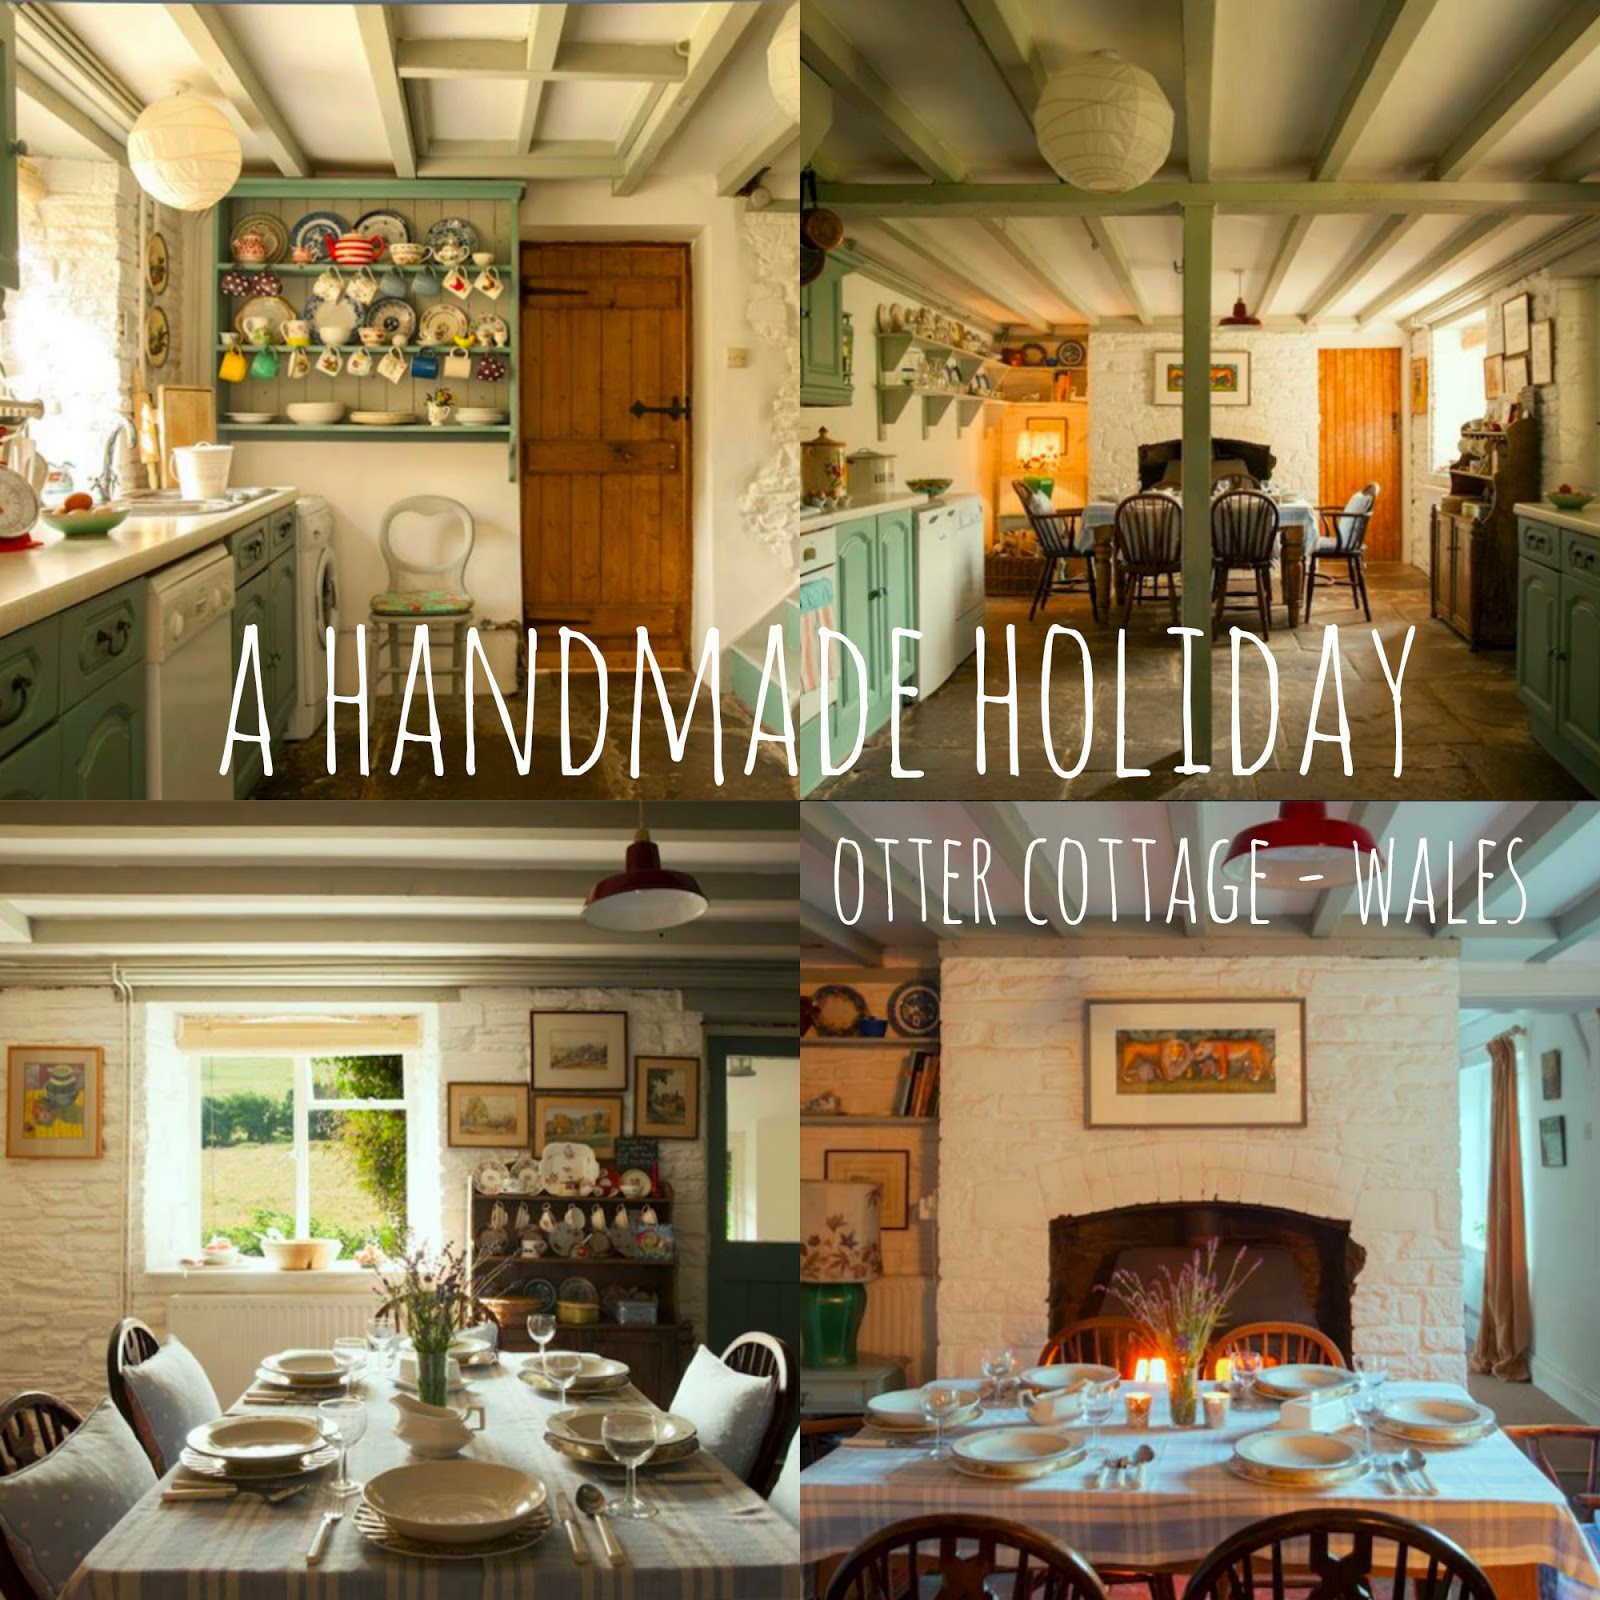 A handmade holiday - Otter cottage